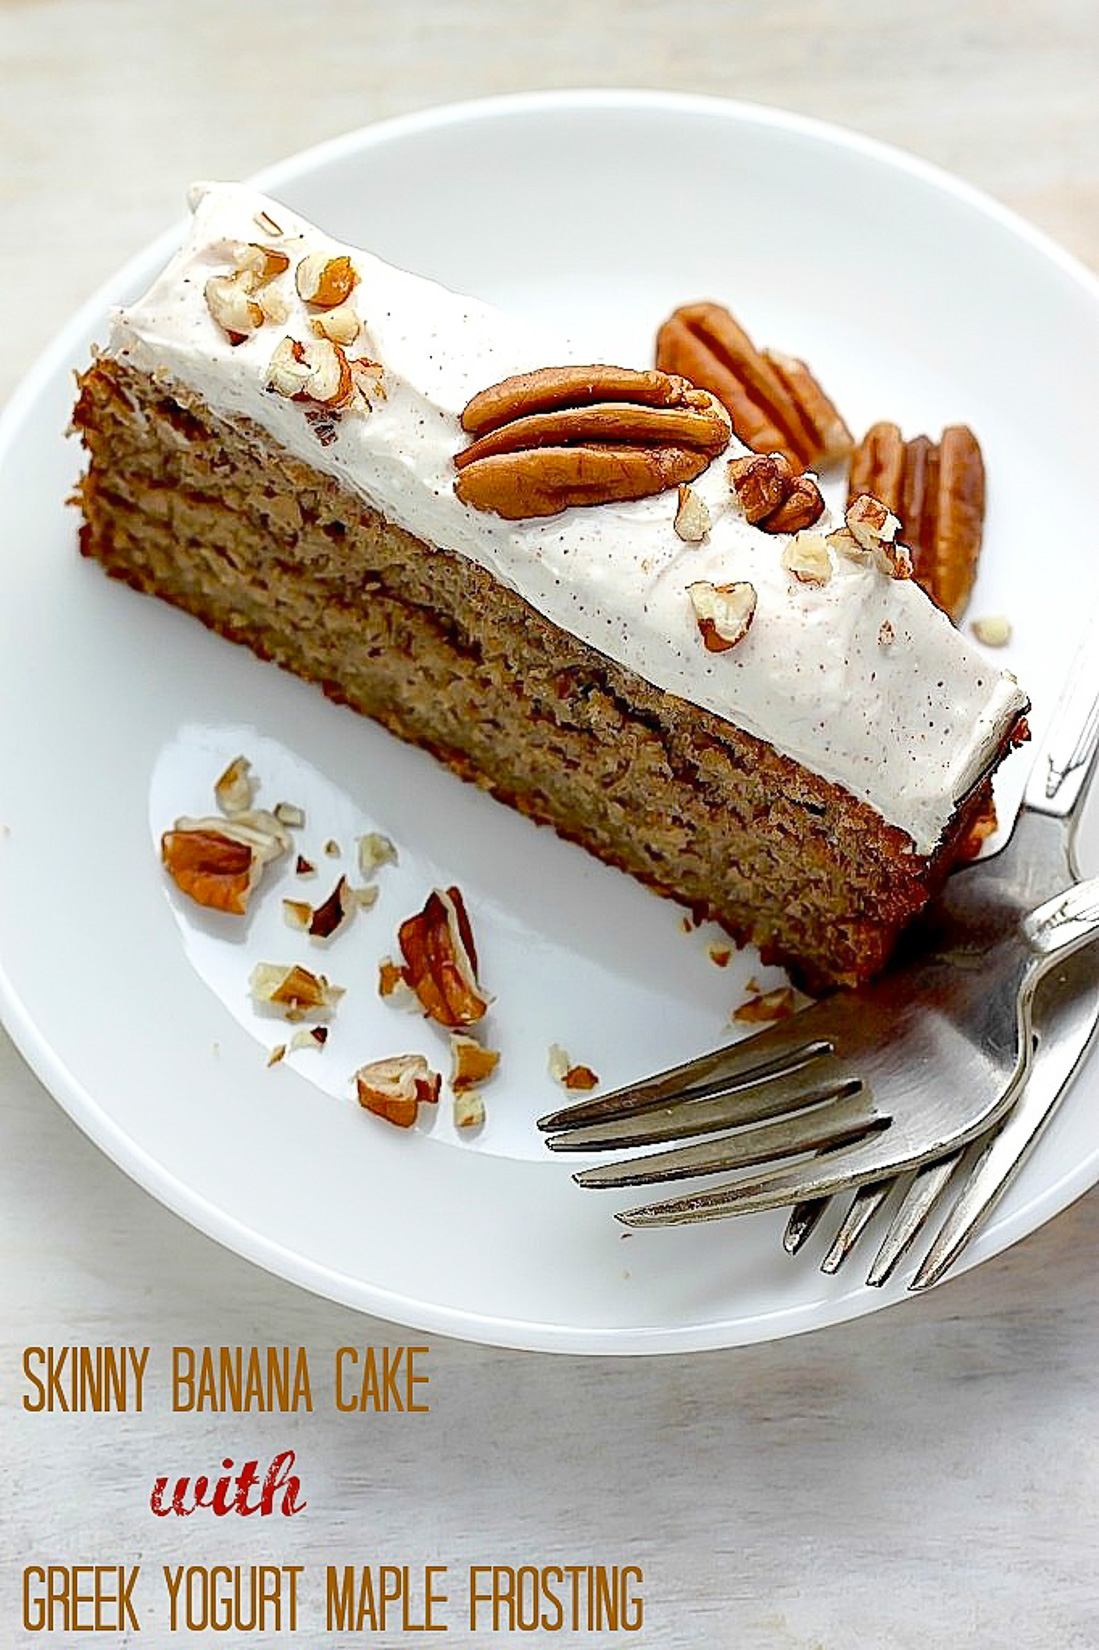 Skinny Banana Cake with Maple Frosting   Baker by Nature Skinny Banana Cake with Maple Frosting